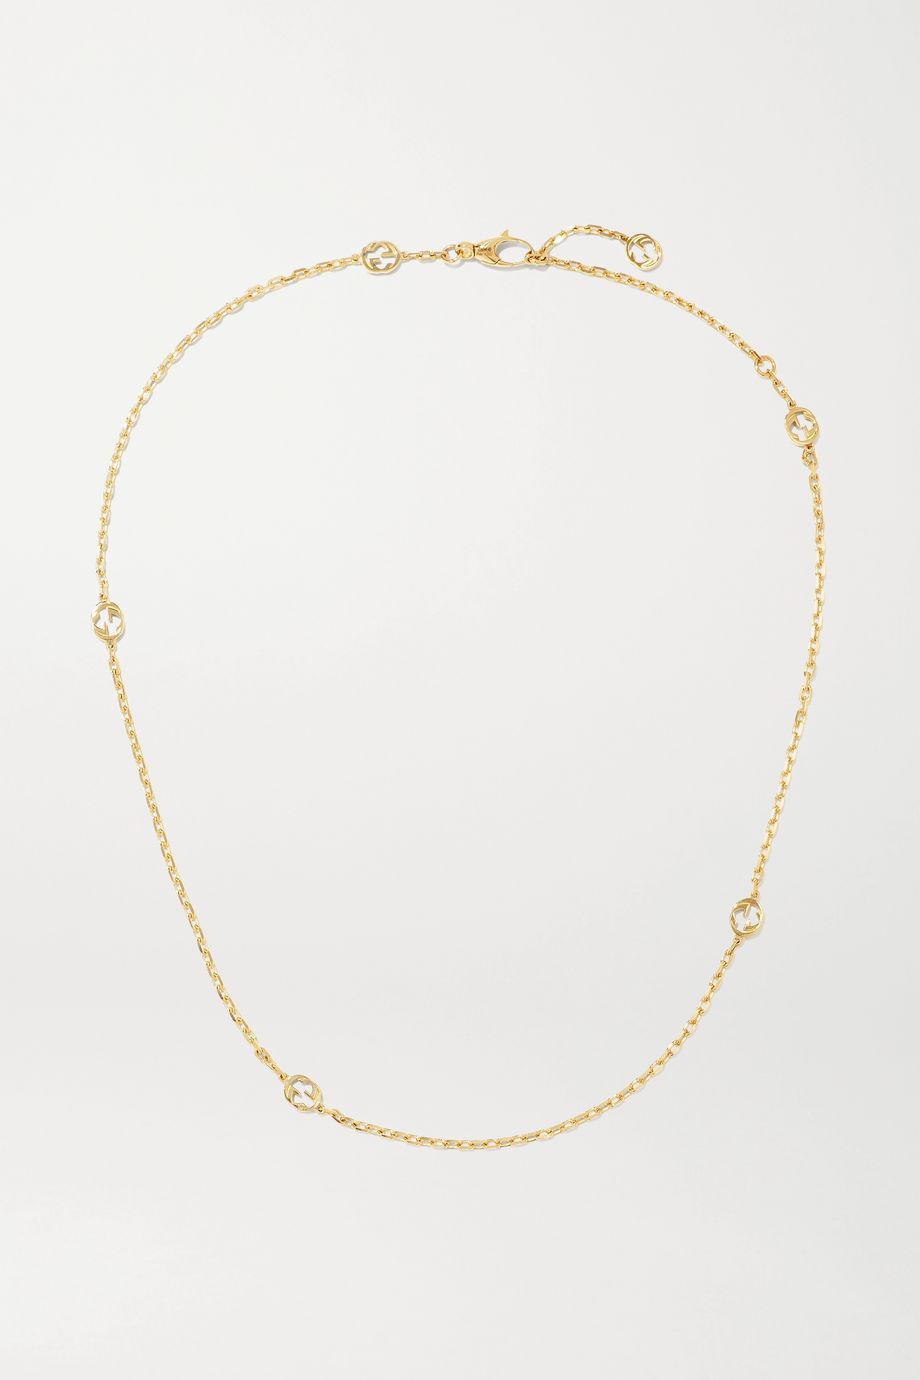 Gucci 18-karat gold necklace